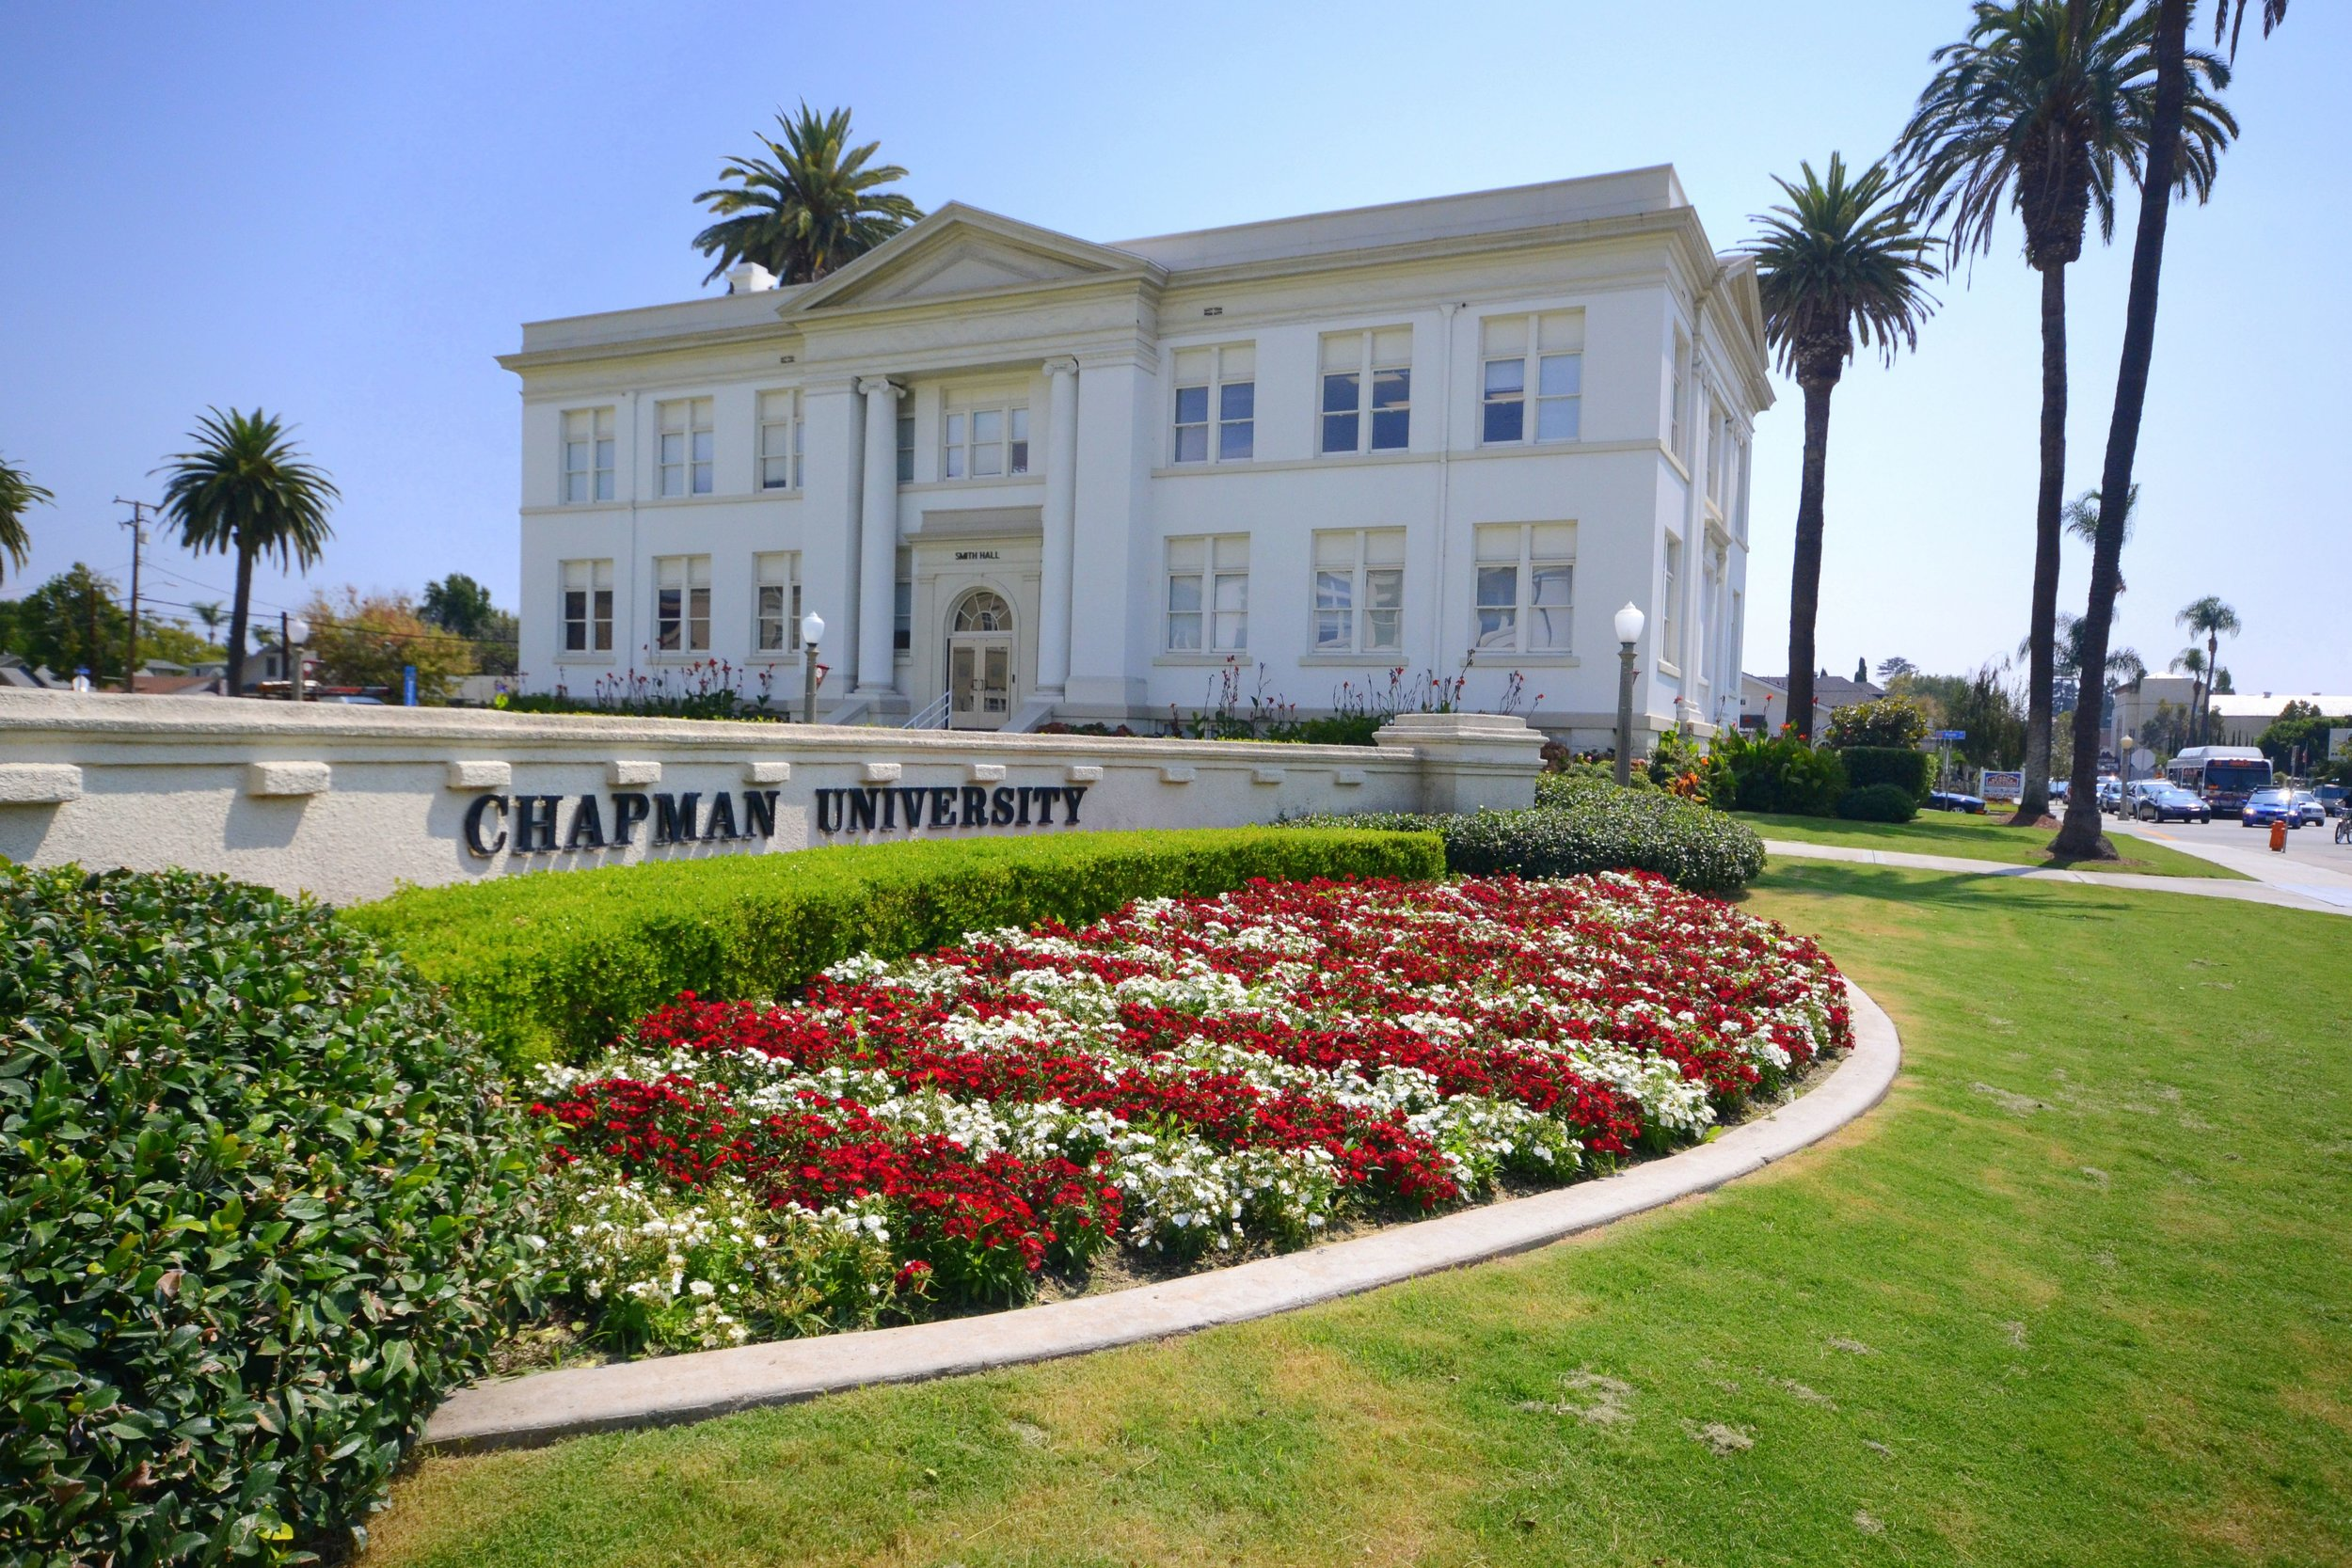 chapman-university-Tracie-Hall-flickr-58a7d8403df78c345b73de95.jpg